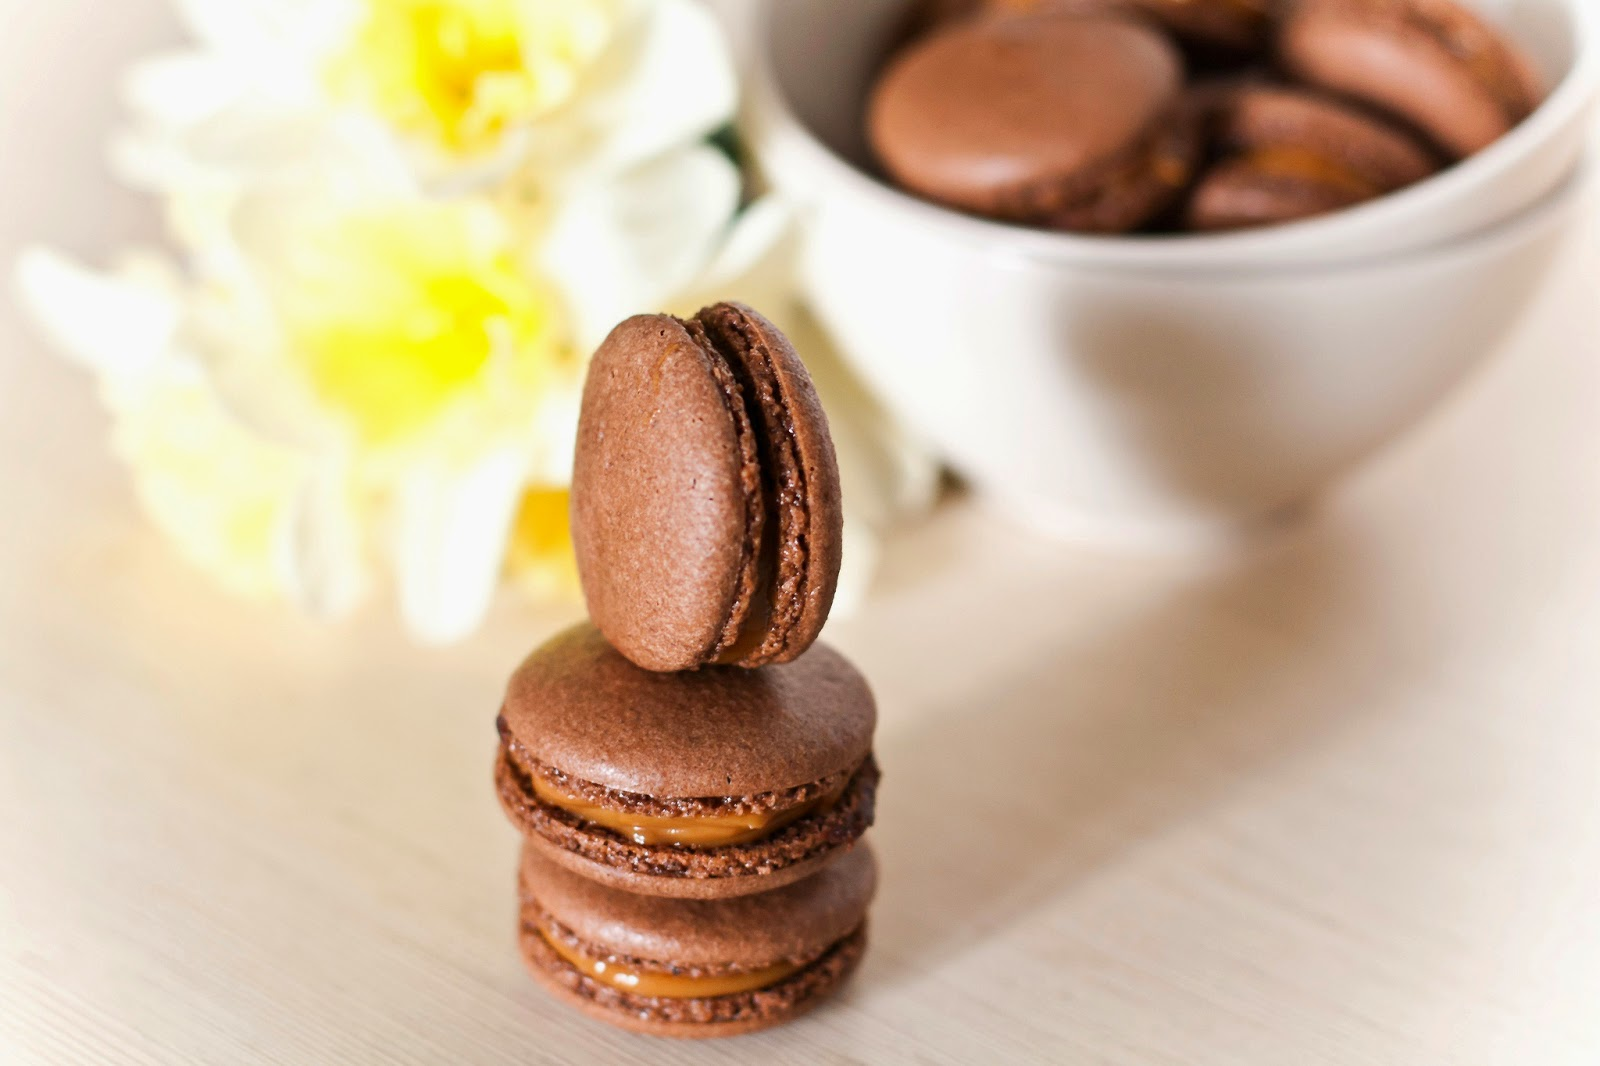 Macaron Pictures Beautiful Wallpapers Collection 2014